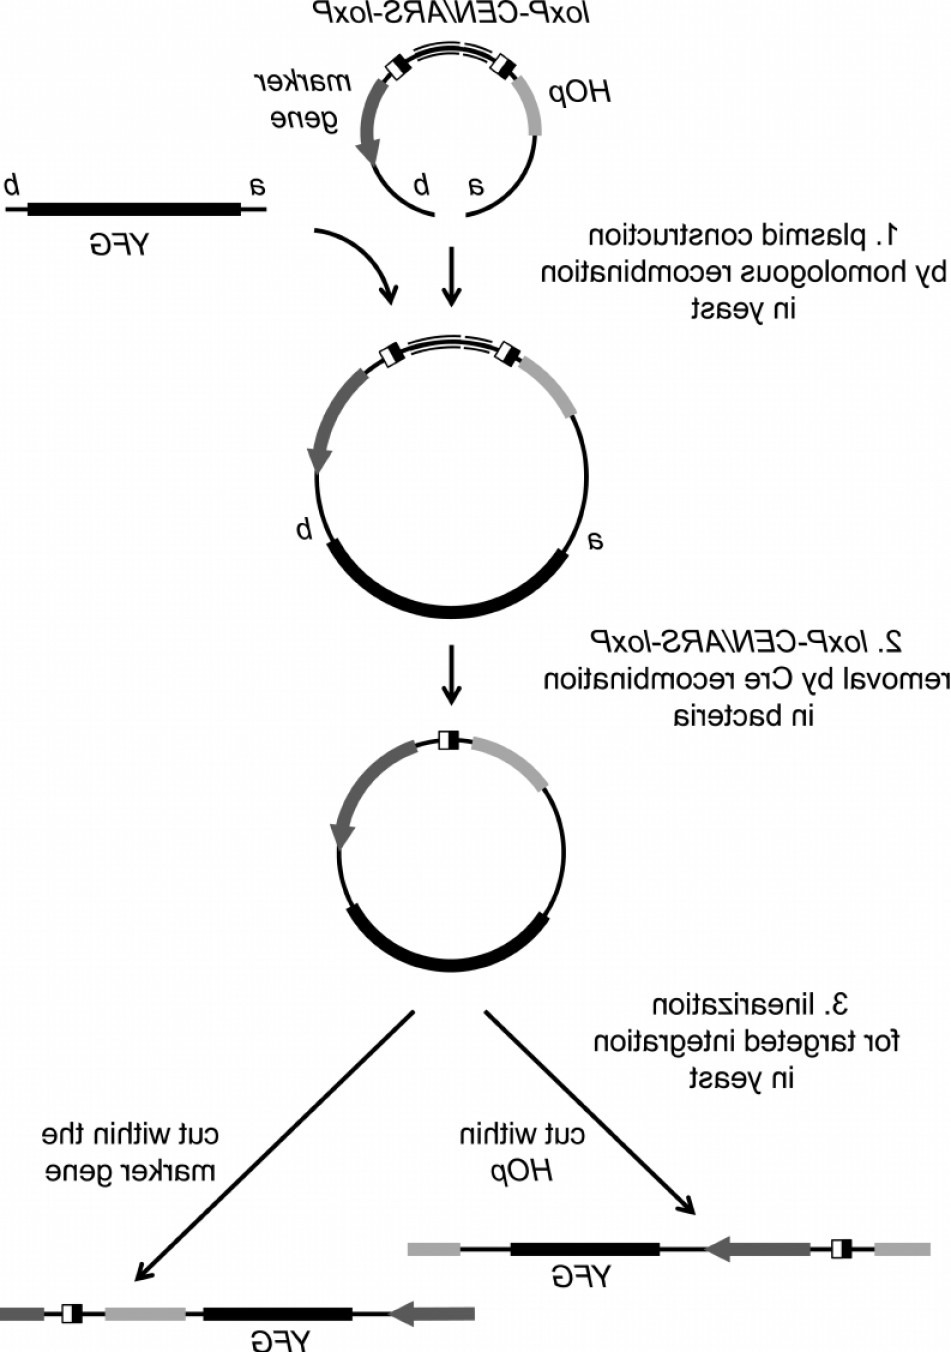 Vector Group Of Hands Overlapped: Flow Chart For Using Pxr Vectors Step Transformation Of Yeast With A Linearized Pxrfig